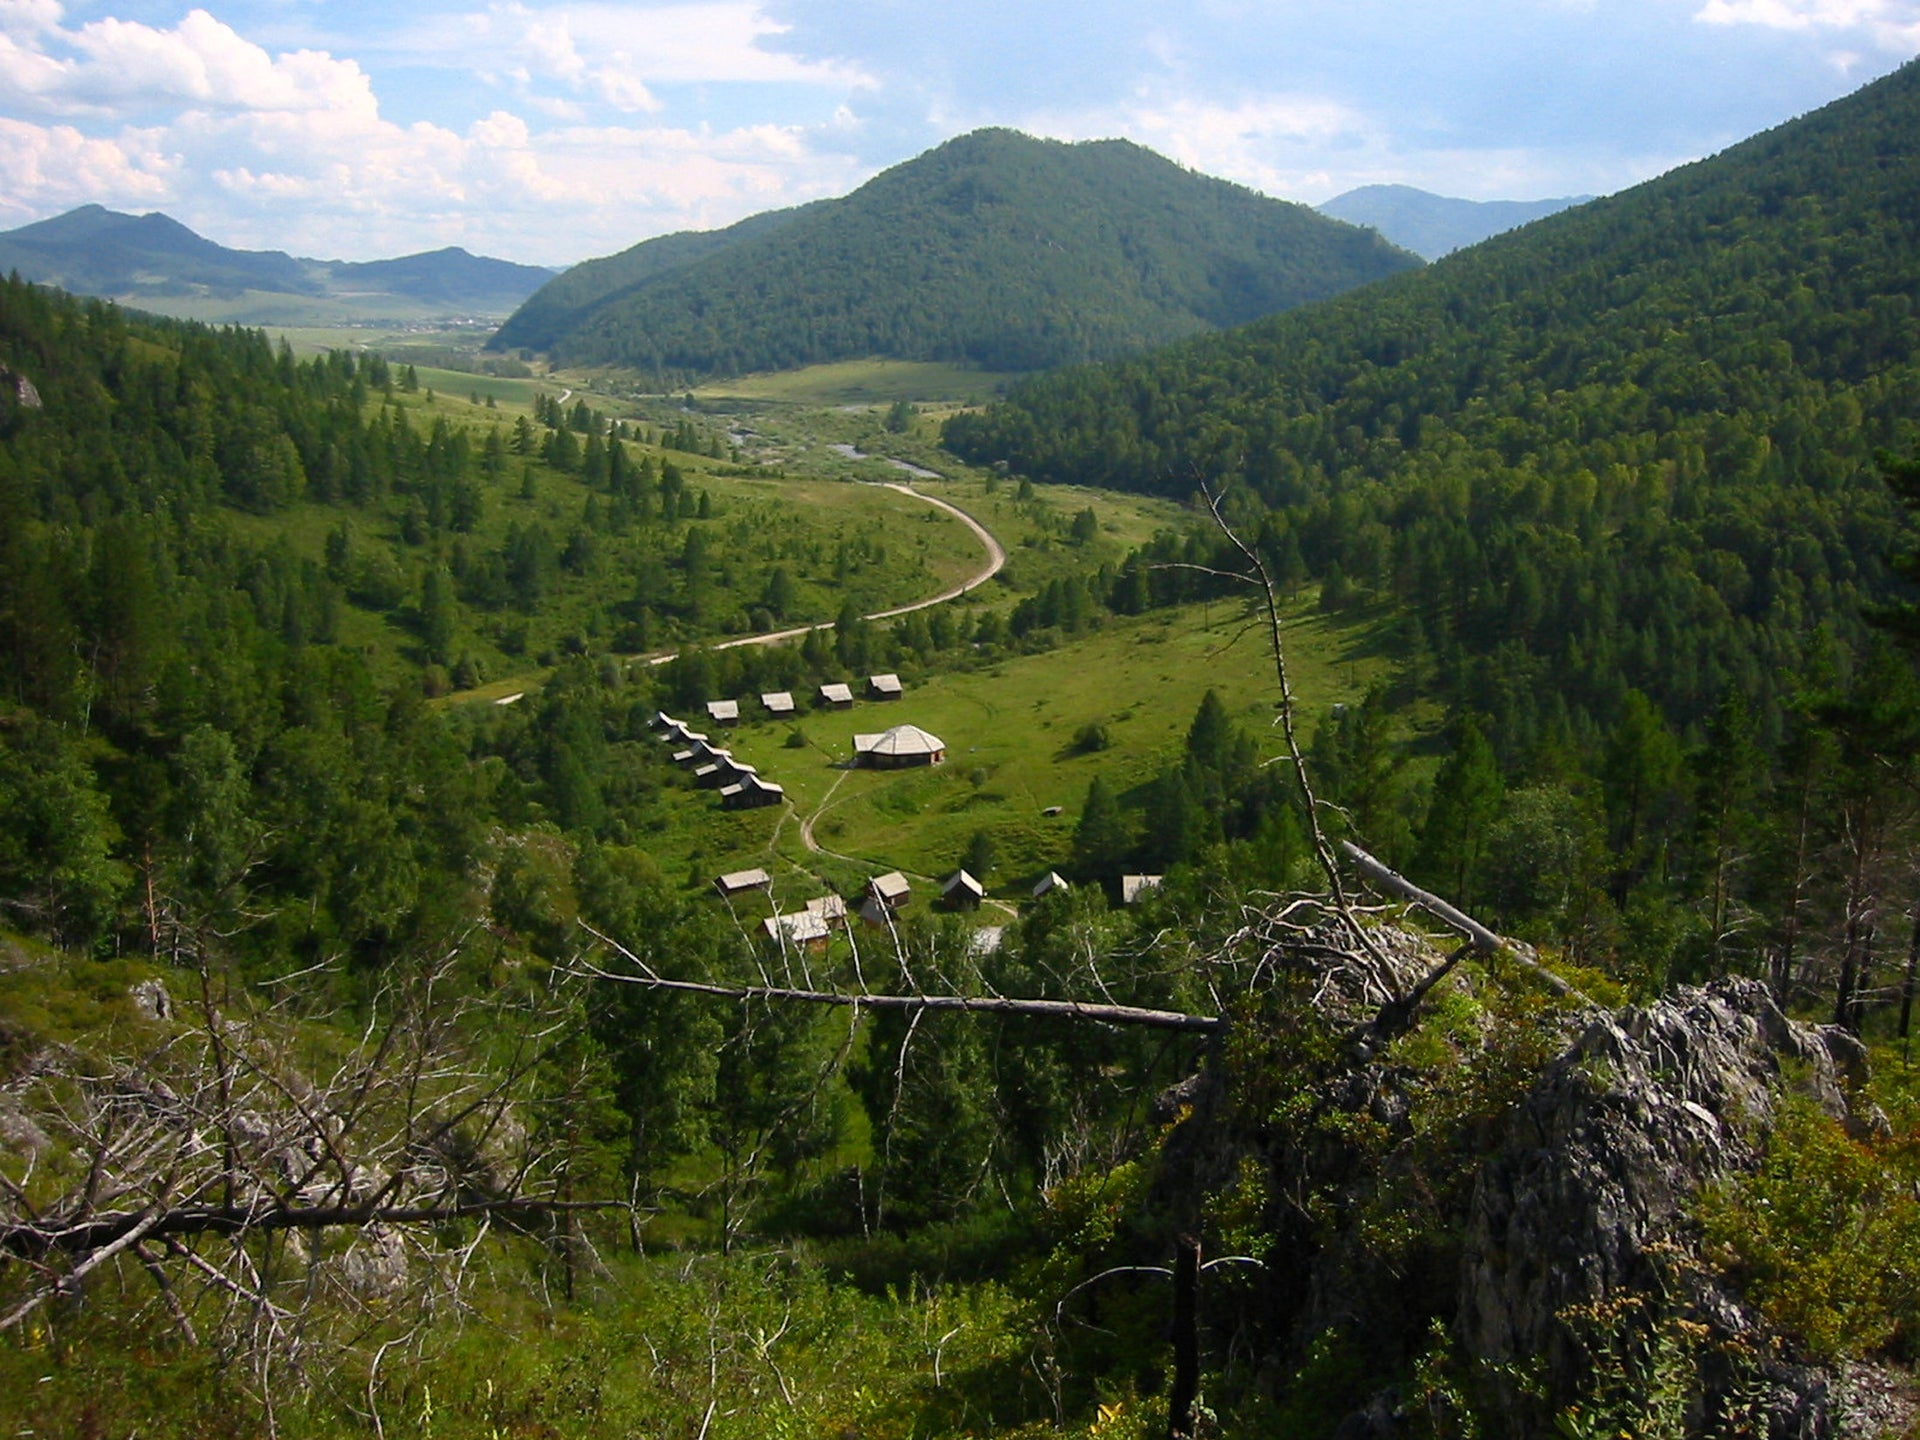 A view of the valley from above the Denisova Cave archaeological site, Siberia, Russia